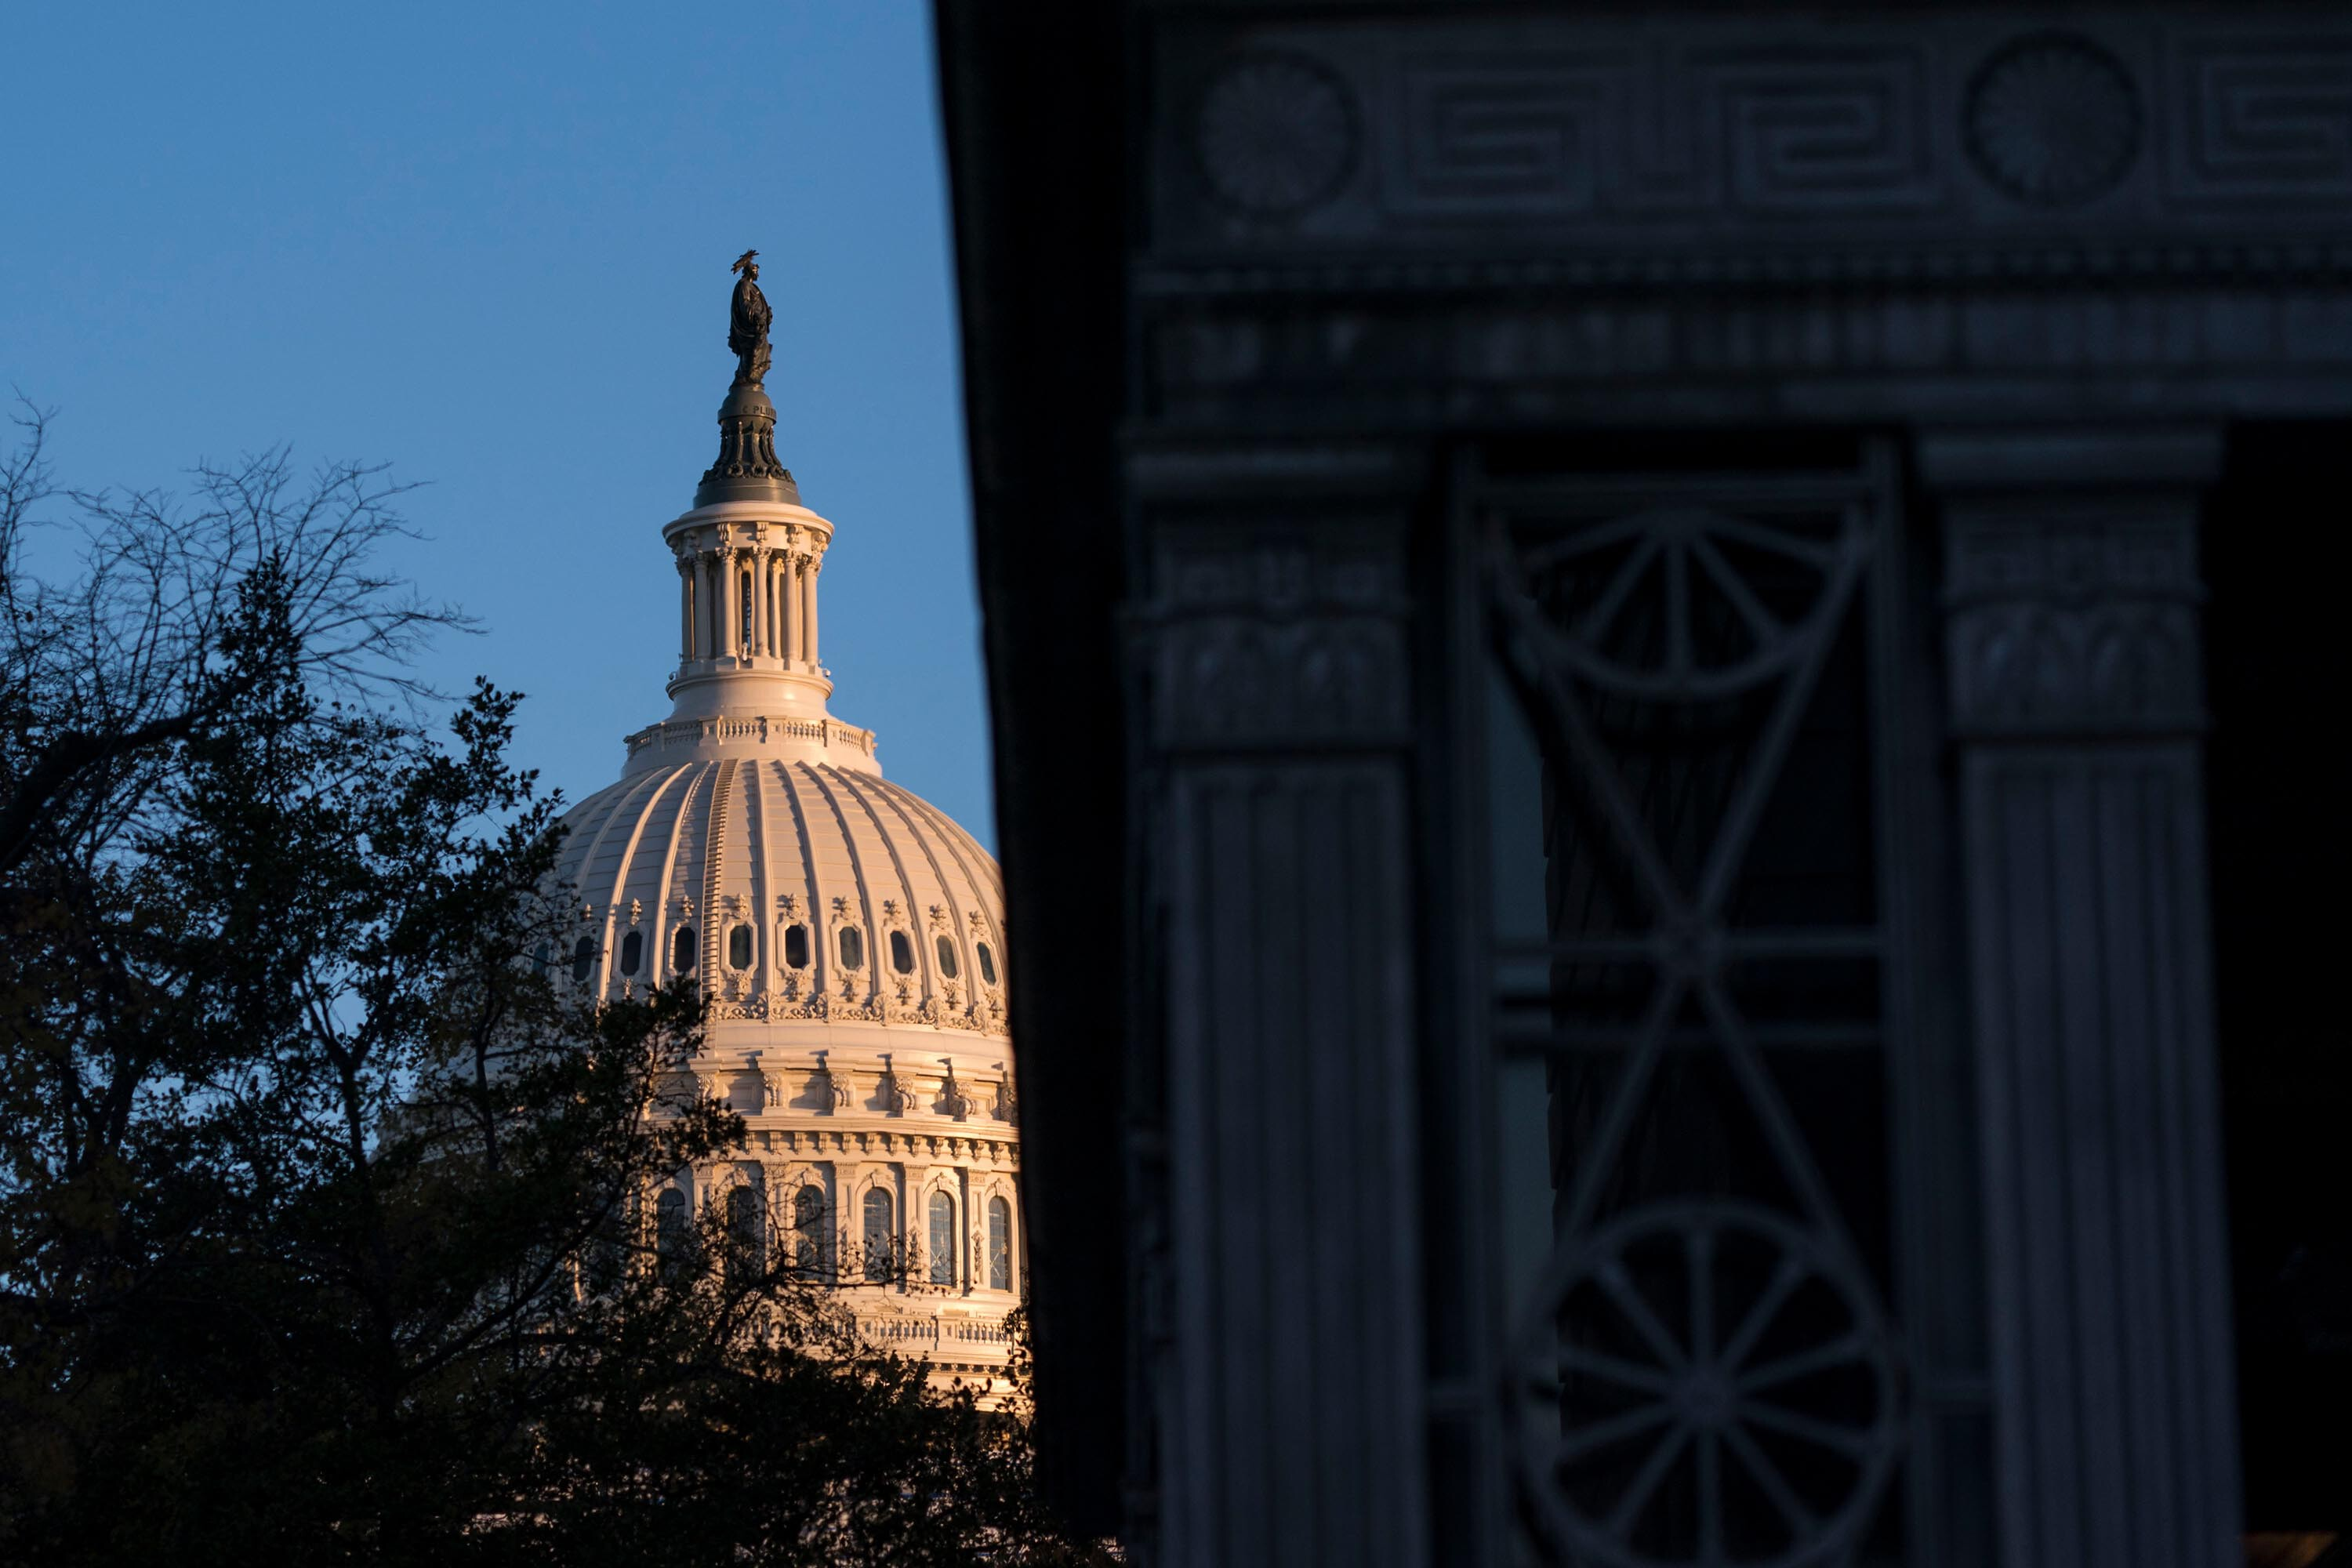 Temporary fencing to surround Capitol ahead of September 18 right-wing rally